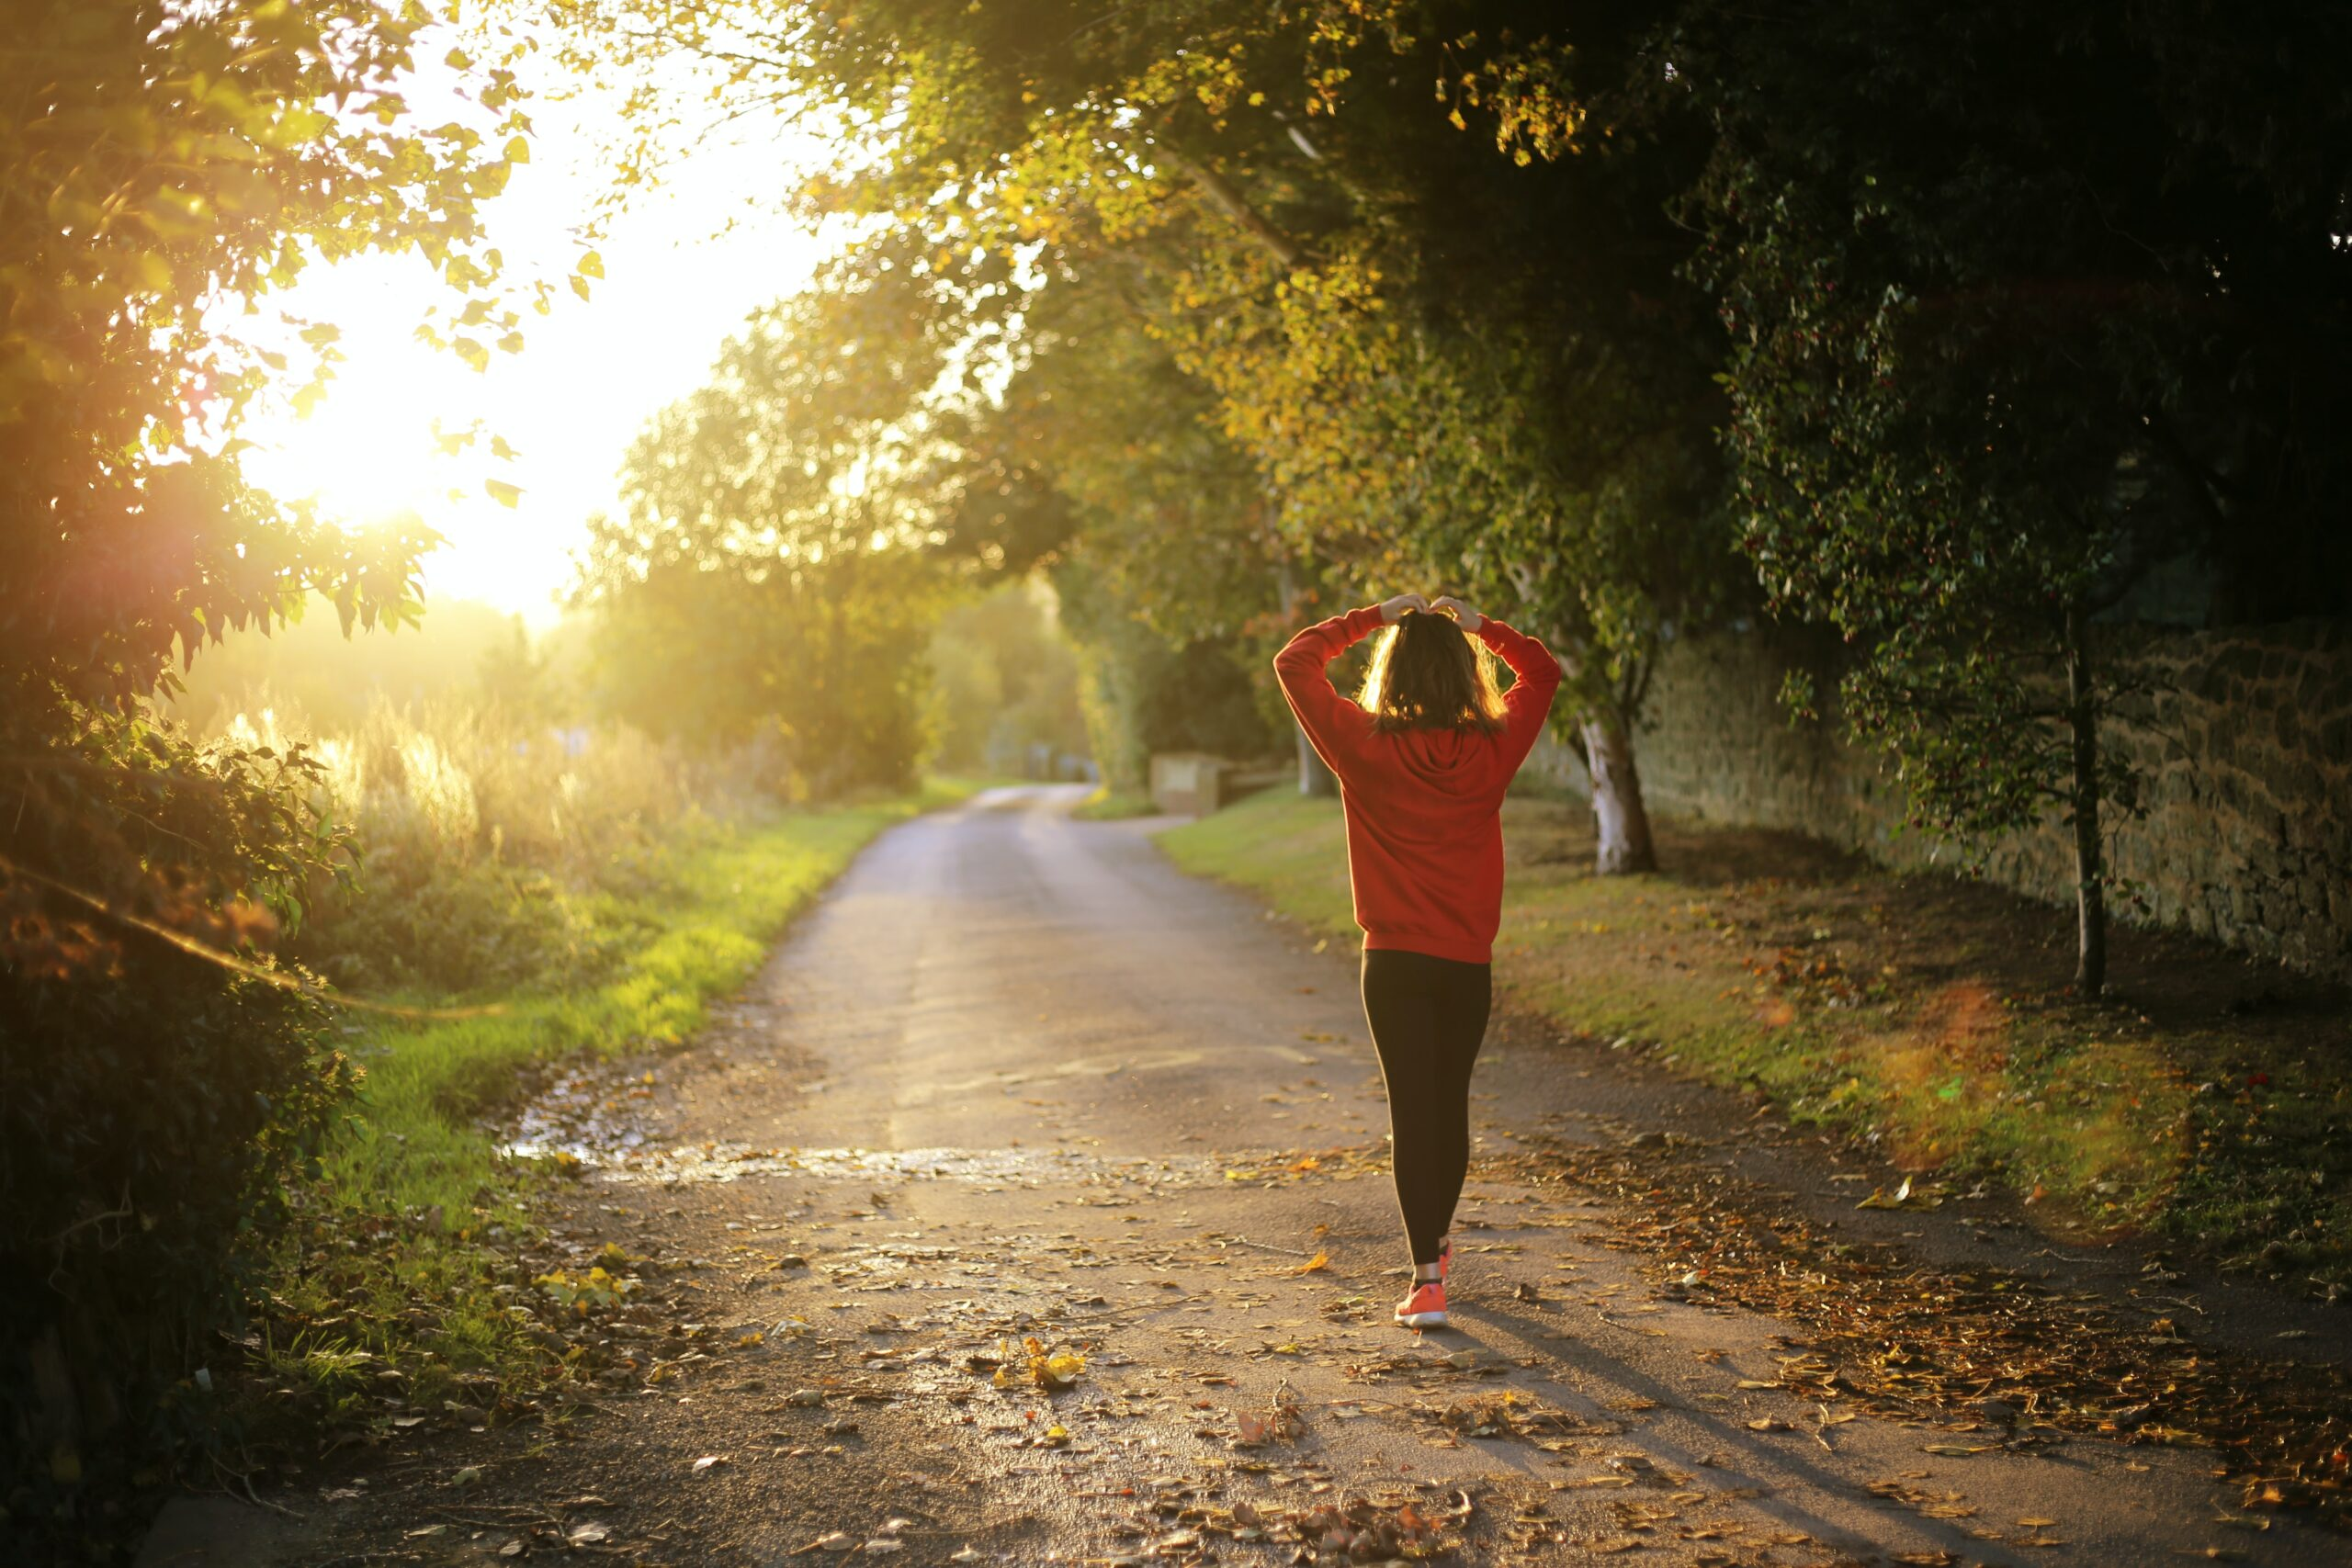 Associations of physical activity with positive mental health: A population-based study